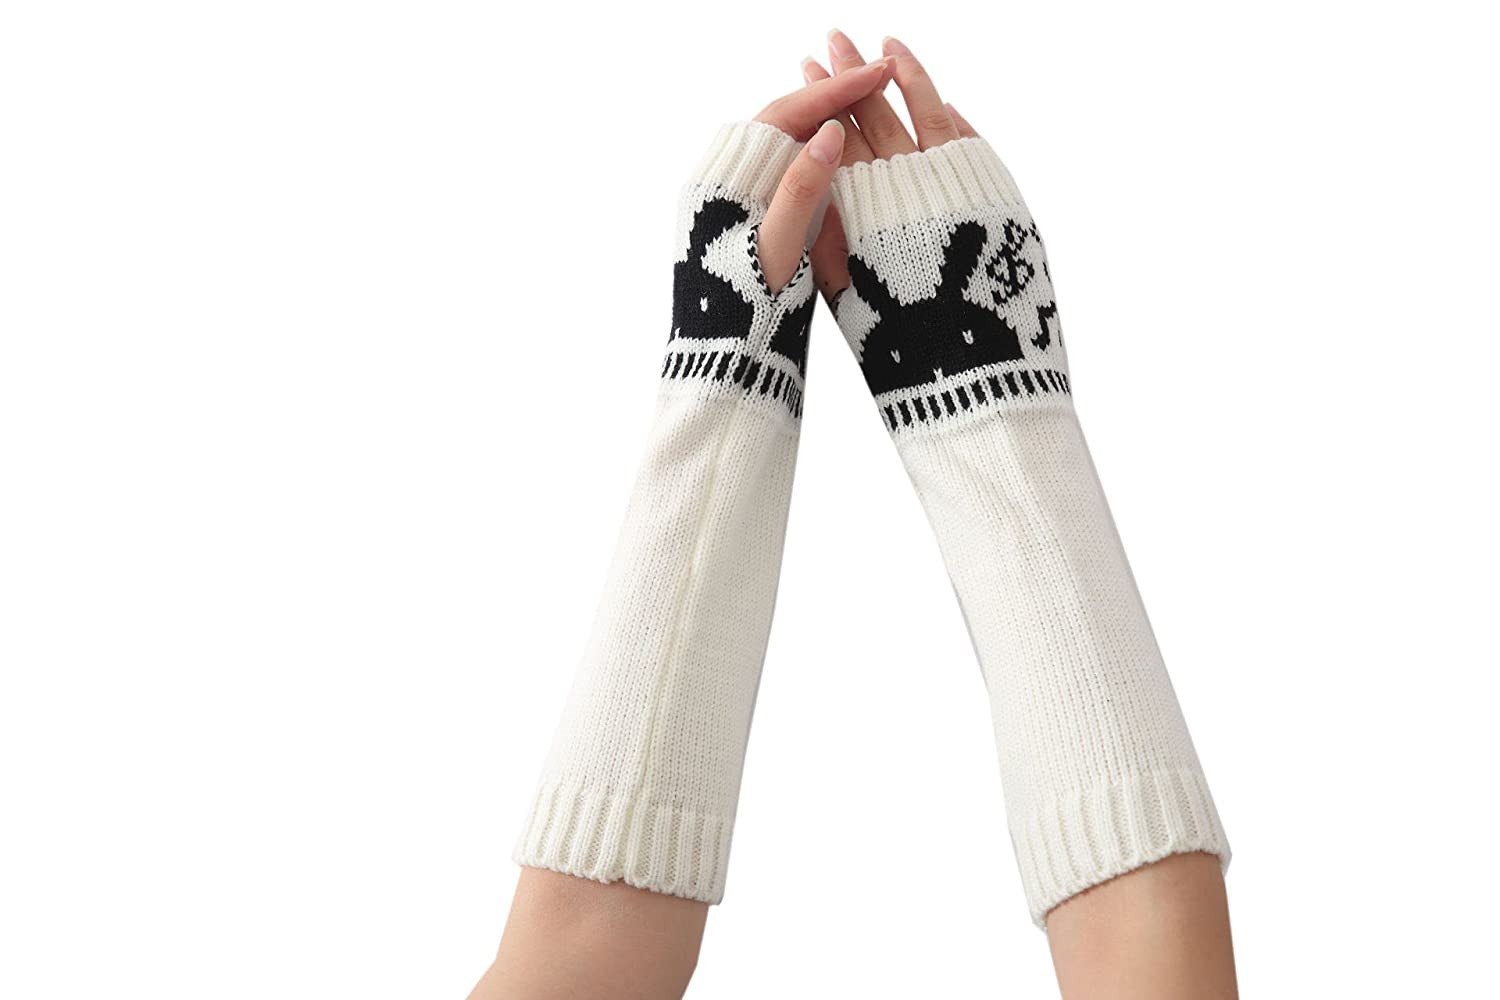 ACVIP Ladies Girls Winter Rabbit Knitted Fingerless Arm Warmers Gloves